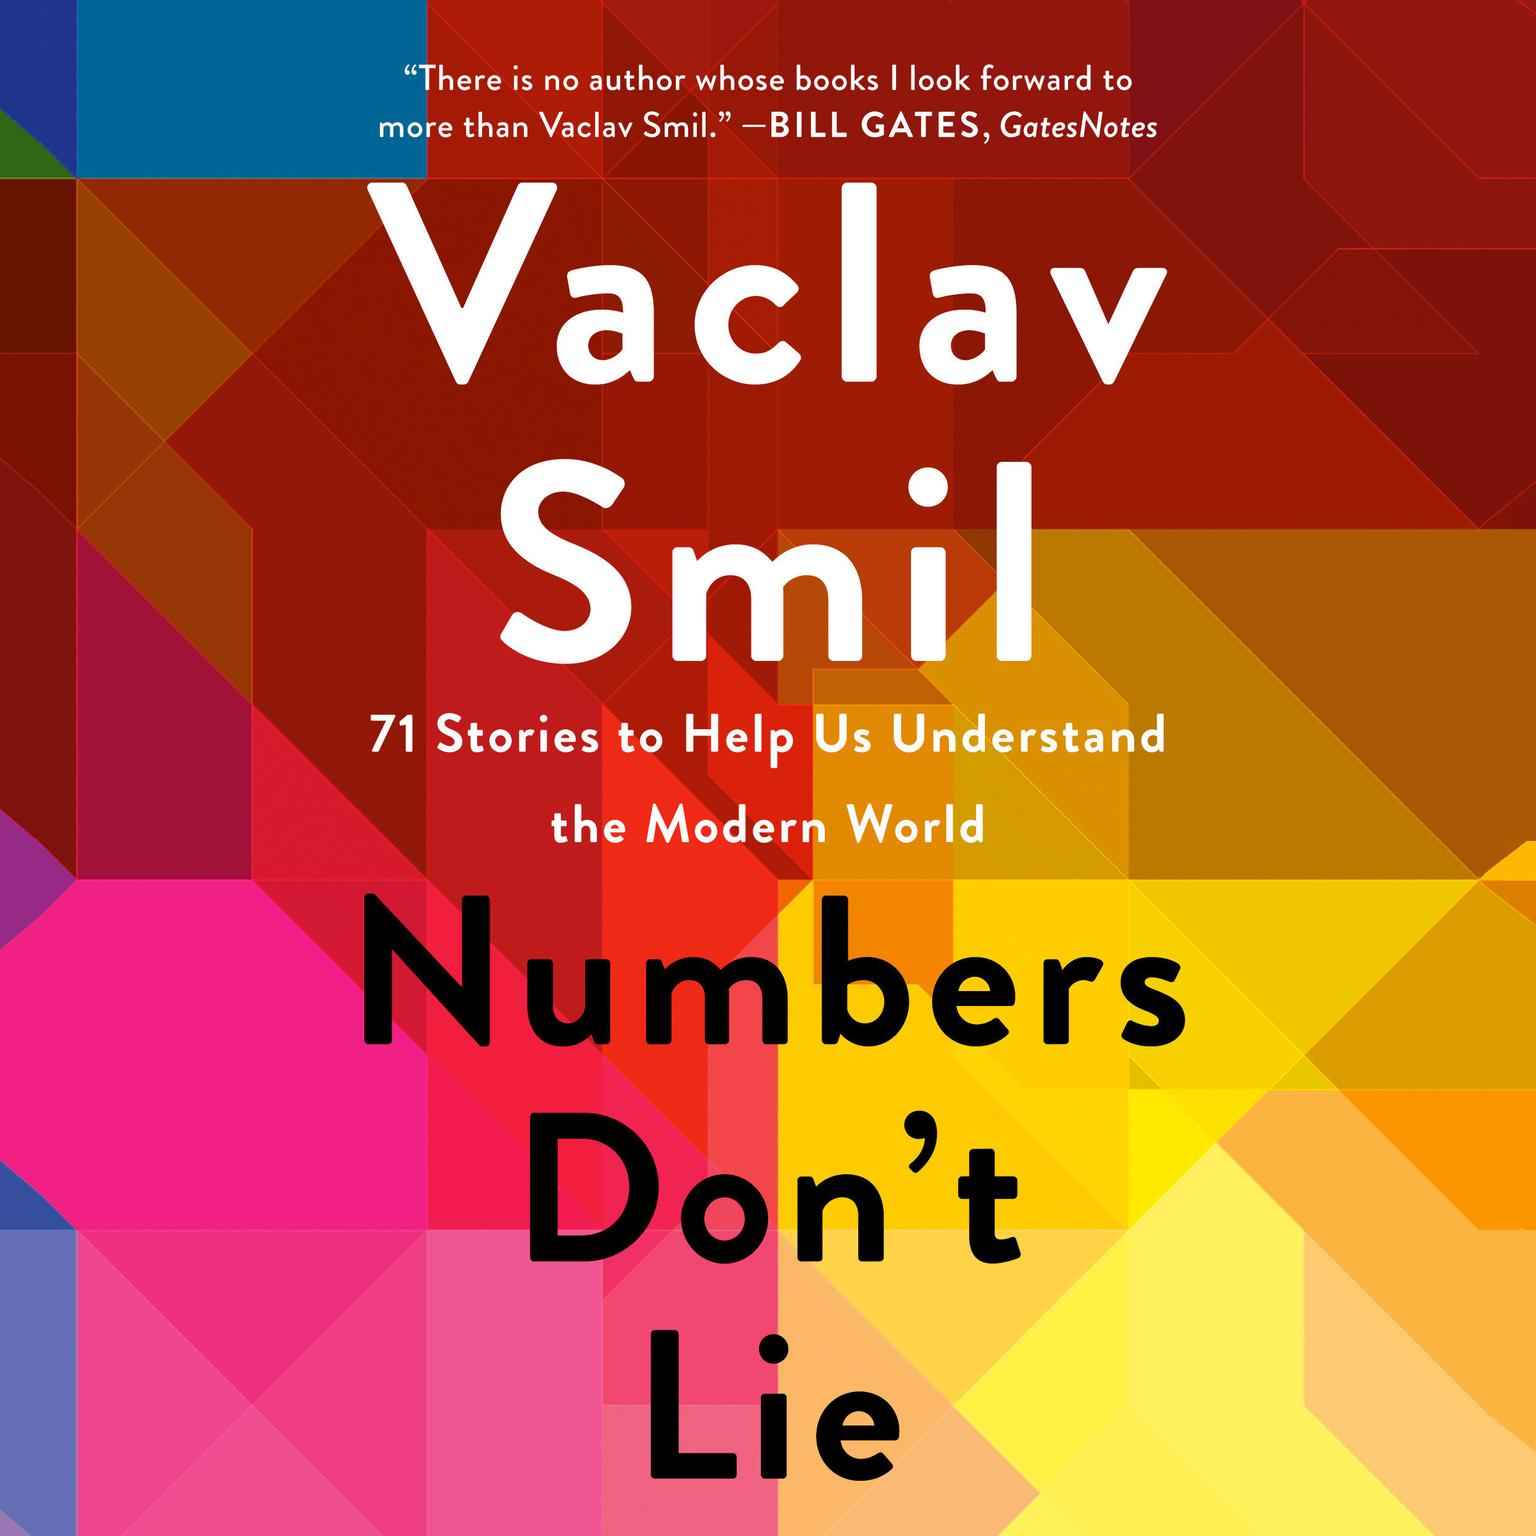 Numbers Dont Lie: 71 Stories to Help Us Understand the Modern World Audiobook, by Vaclav Smil